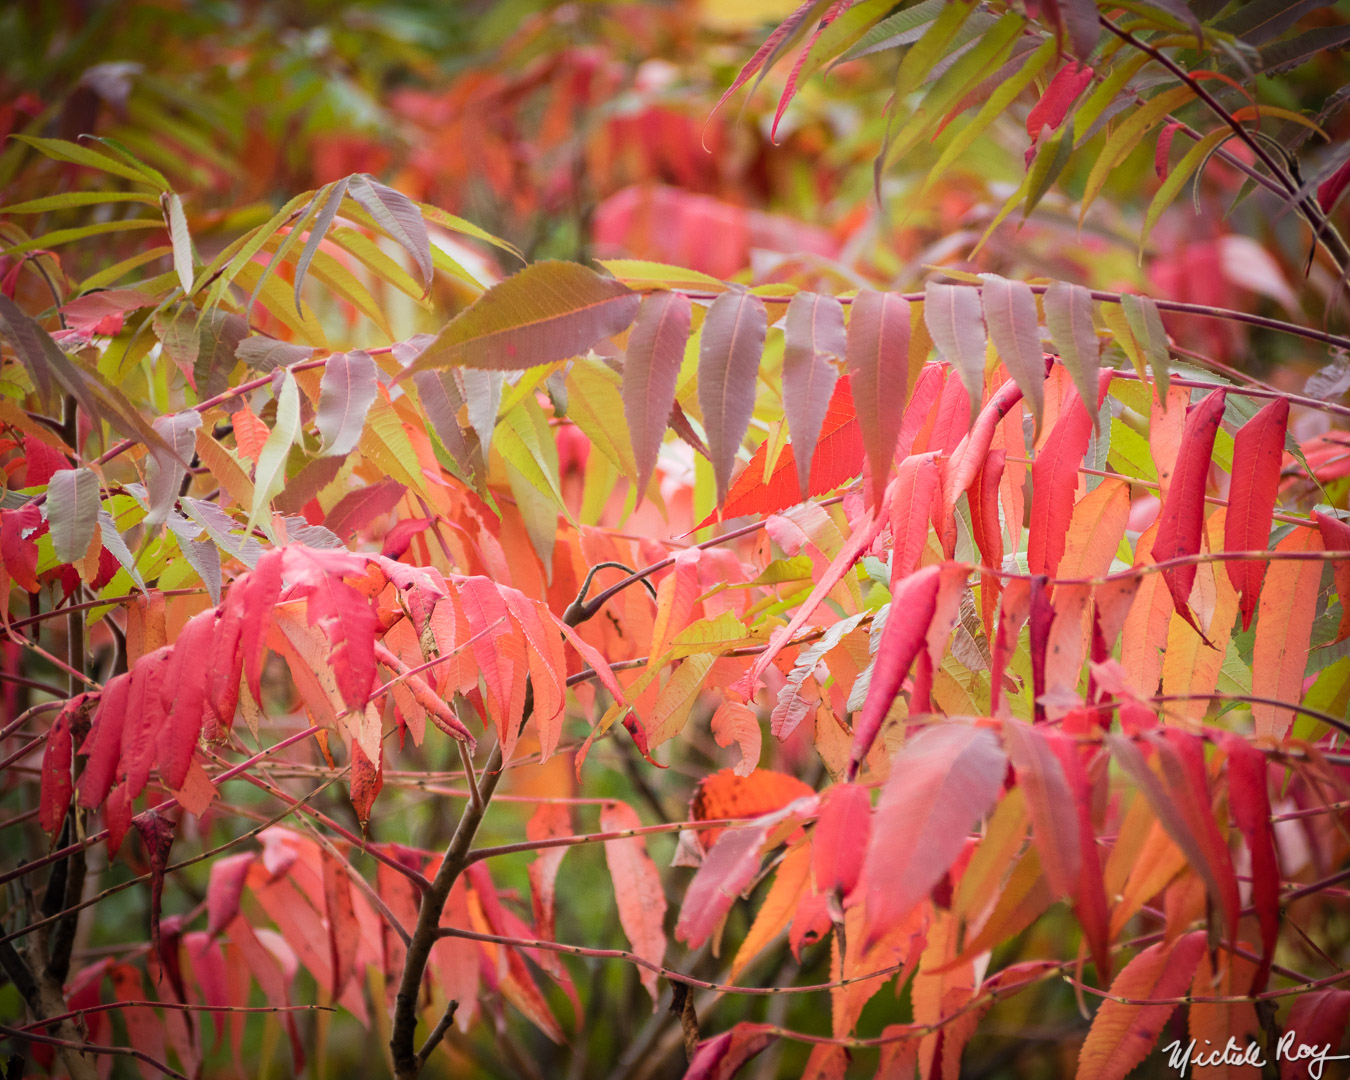 Couleurs automnales (8) / Fall colors (8)